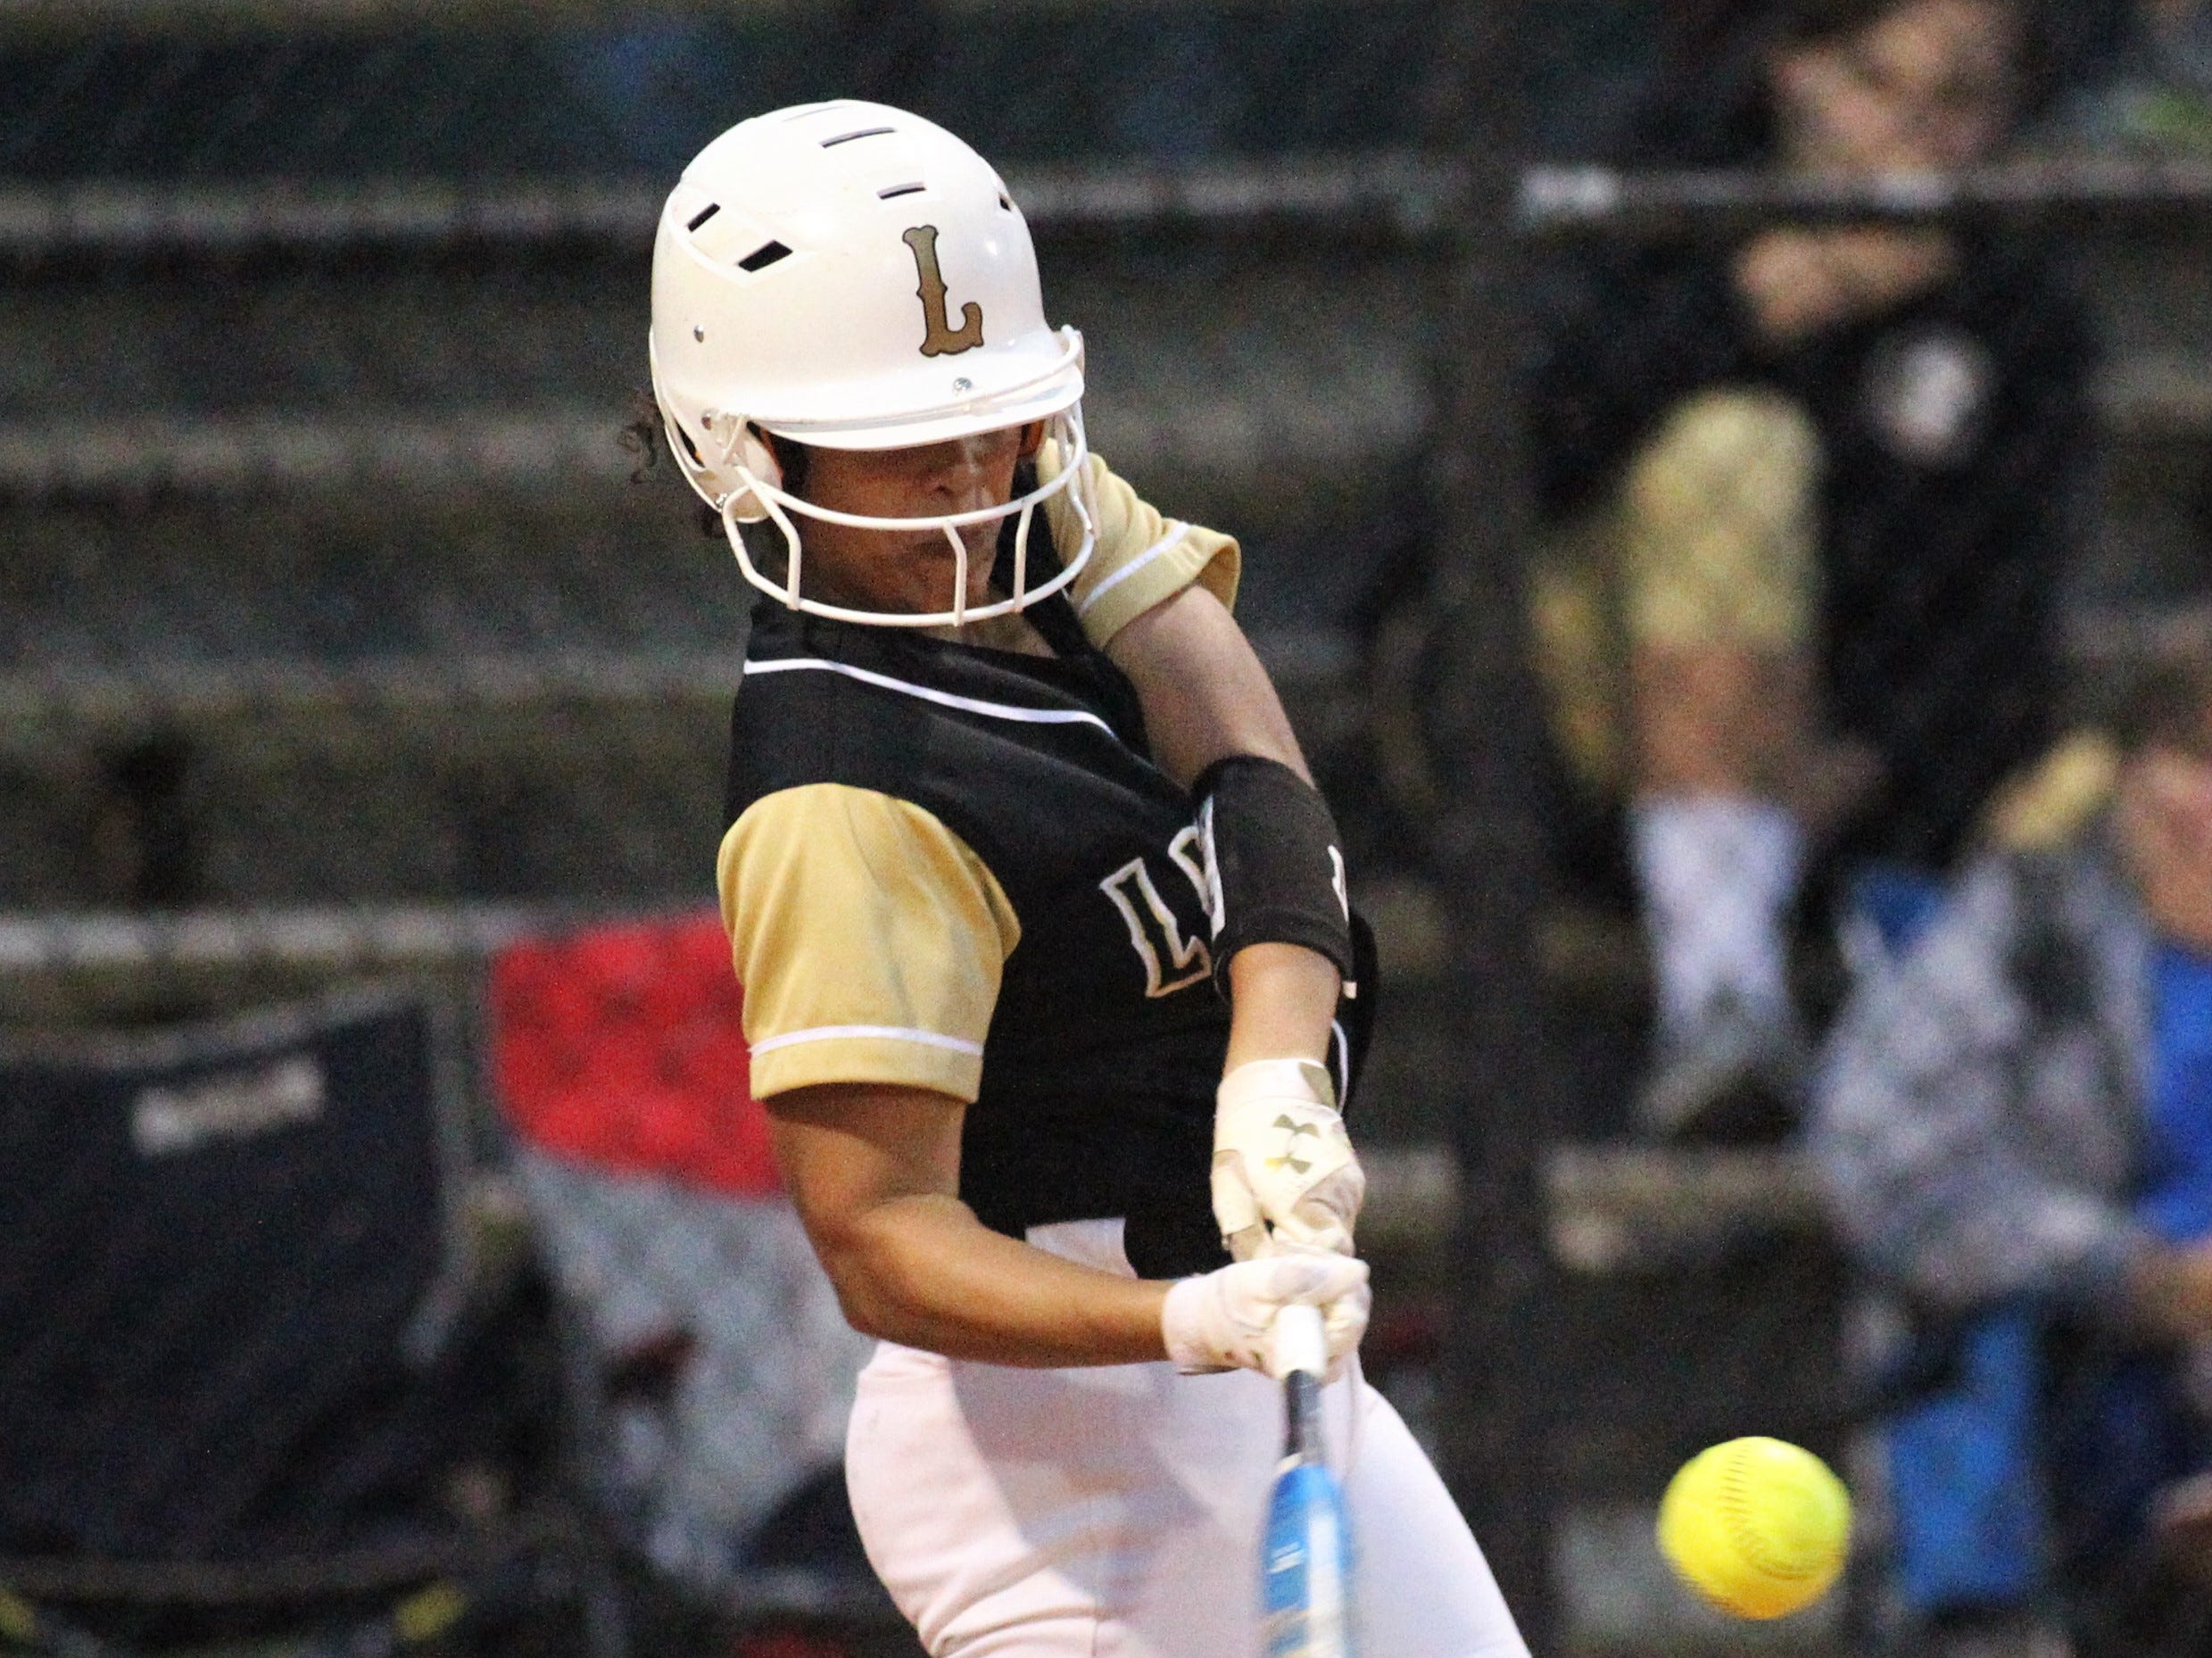 Lincoln junior Emily Zettle bats as Lincoln's softball team beat Florida High 7-3 on Thursday, April 4, 2019.